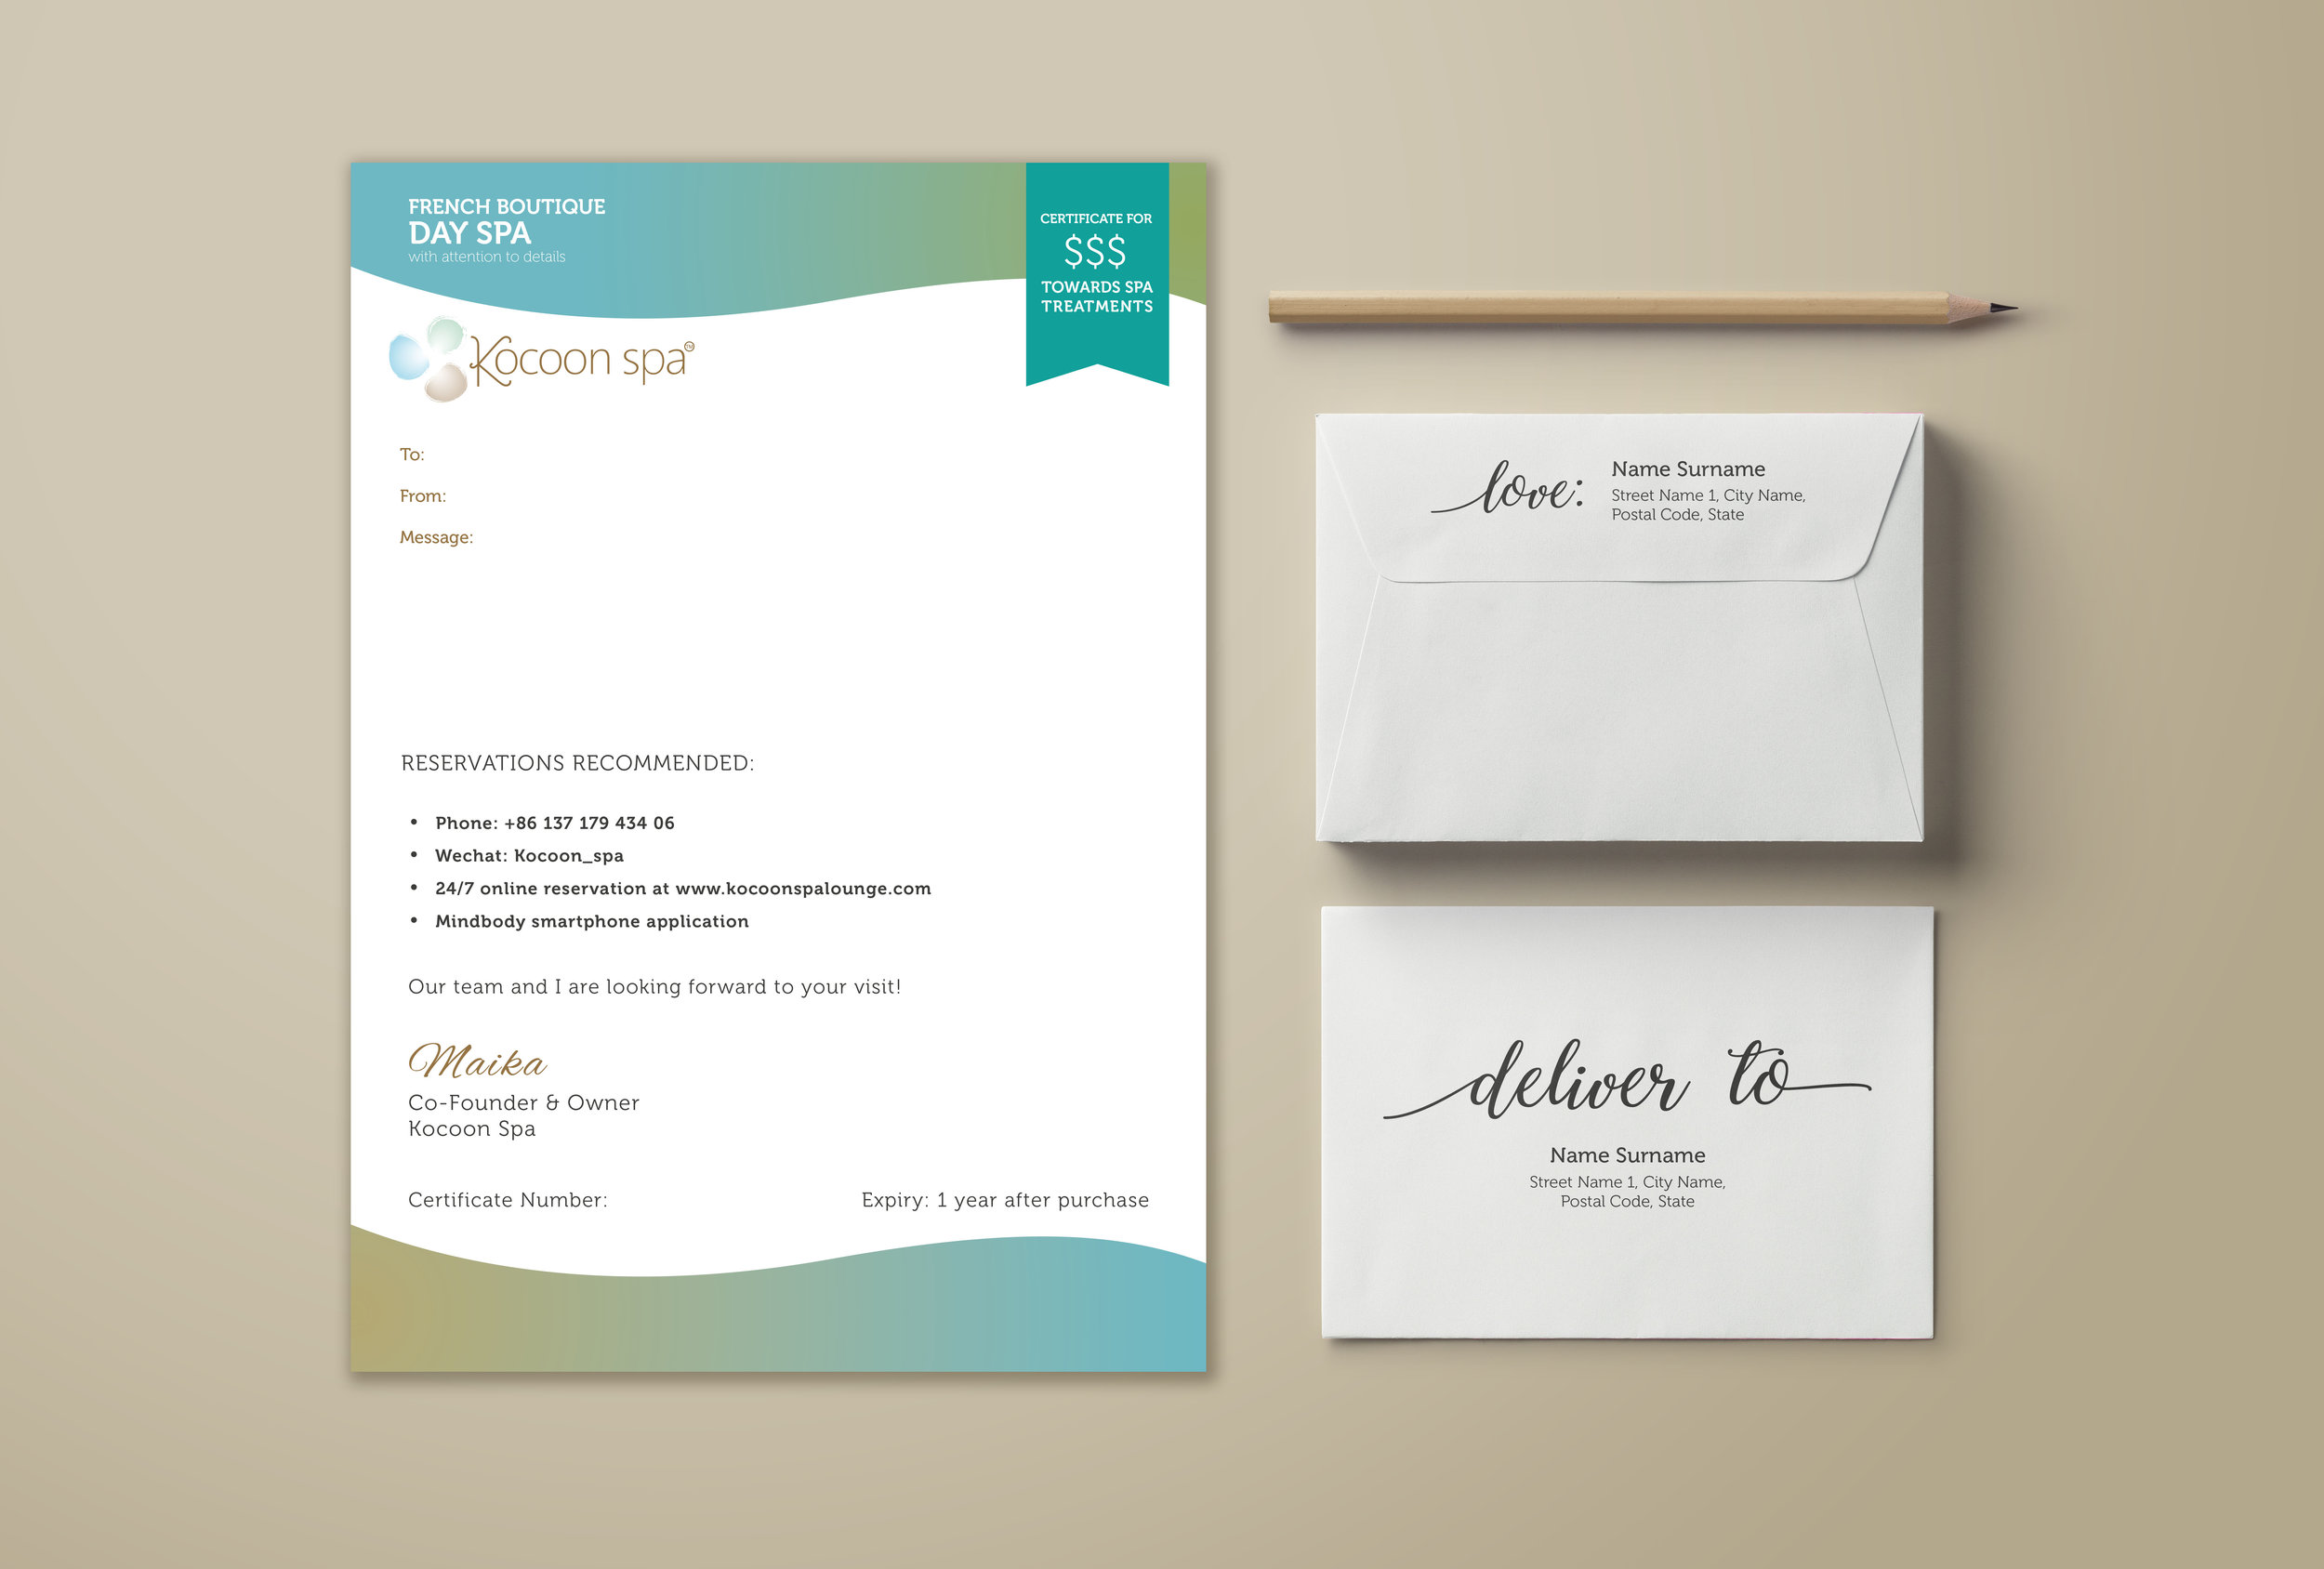 Our download e-gift certificates on the spa's website